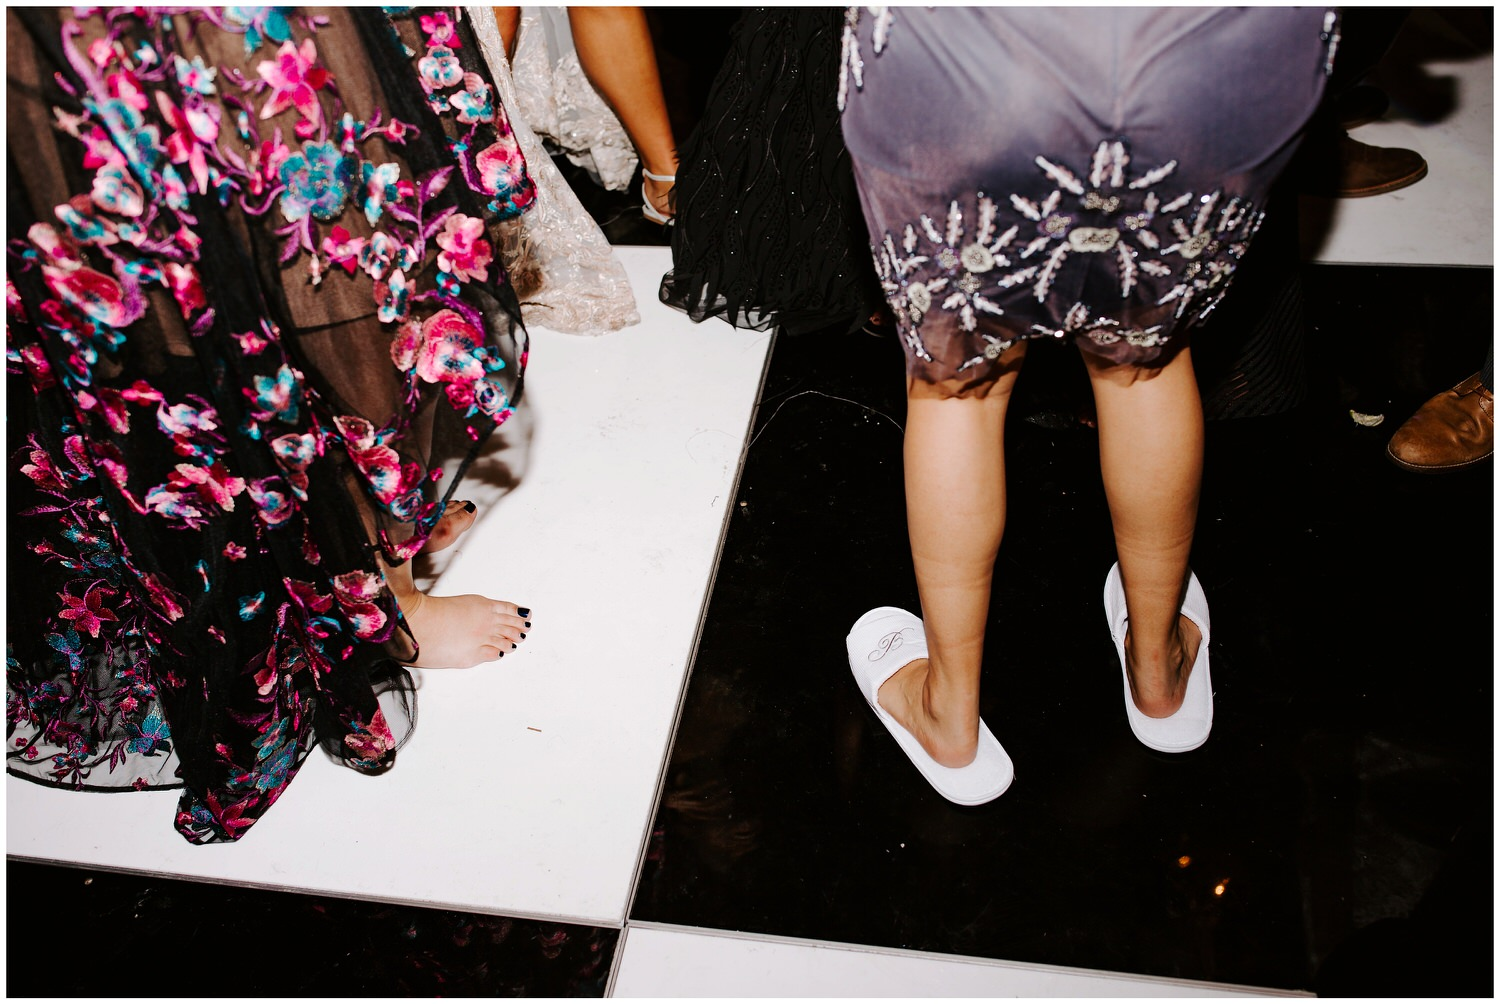 woman wearing slippers at wedding reception